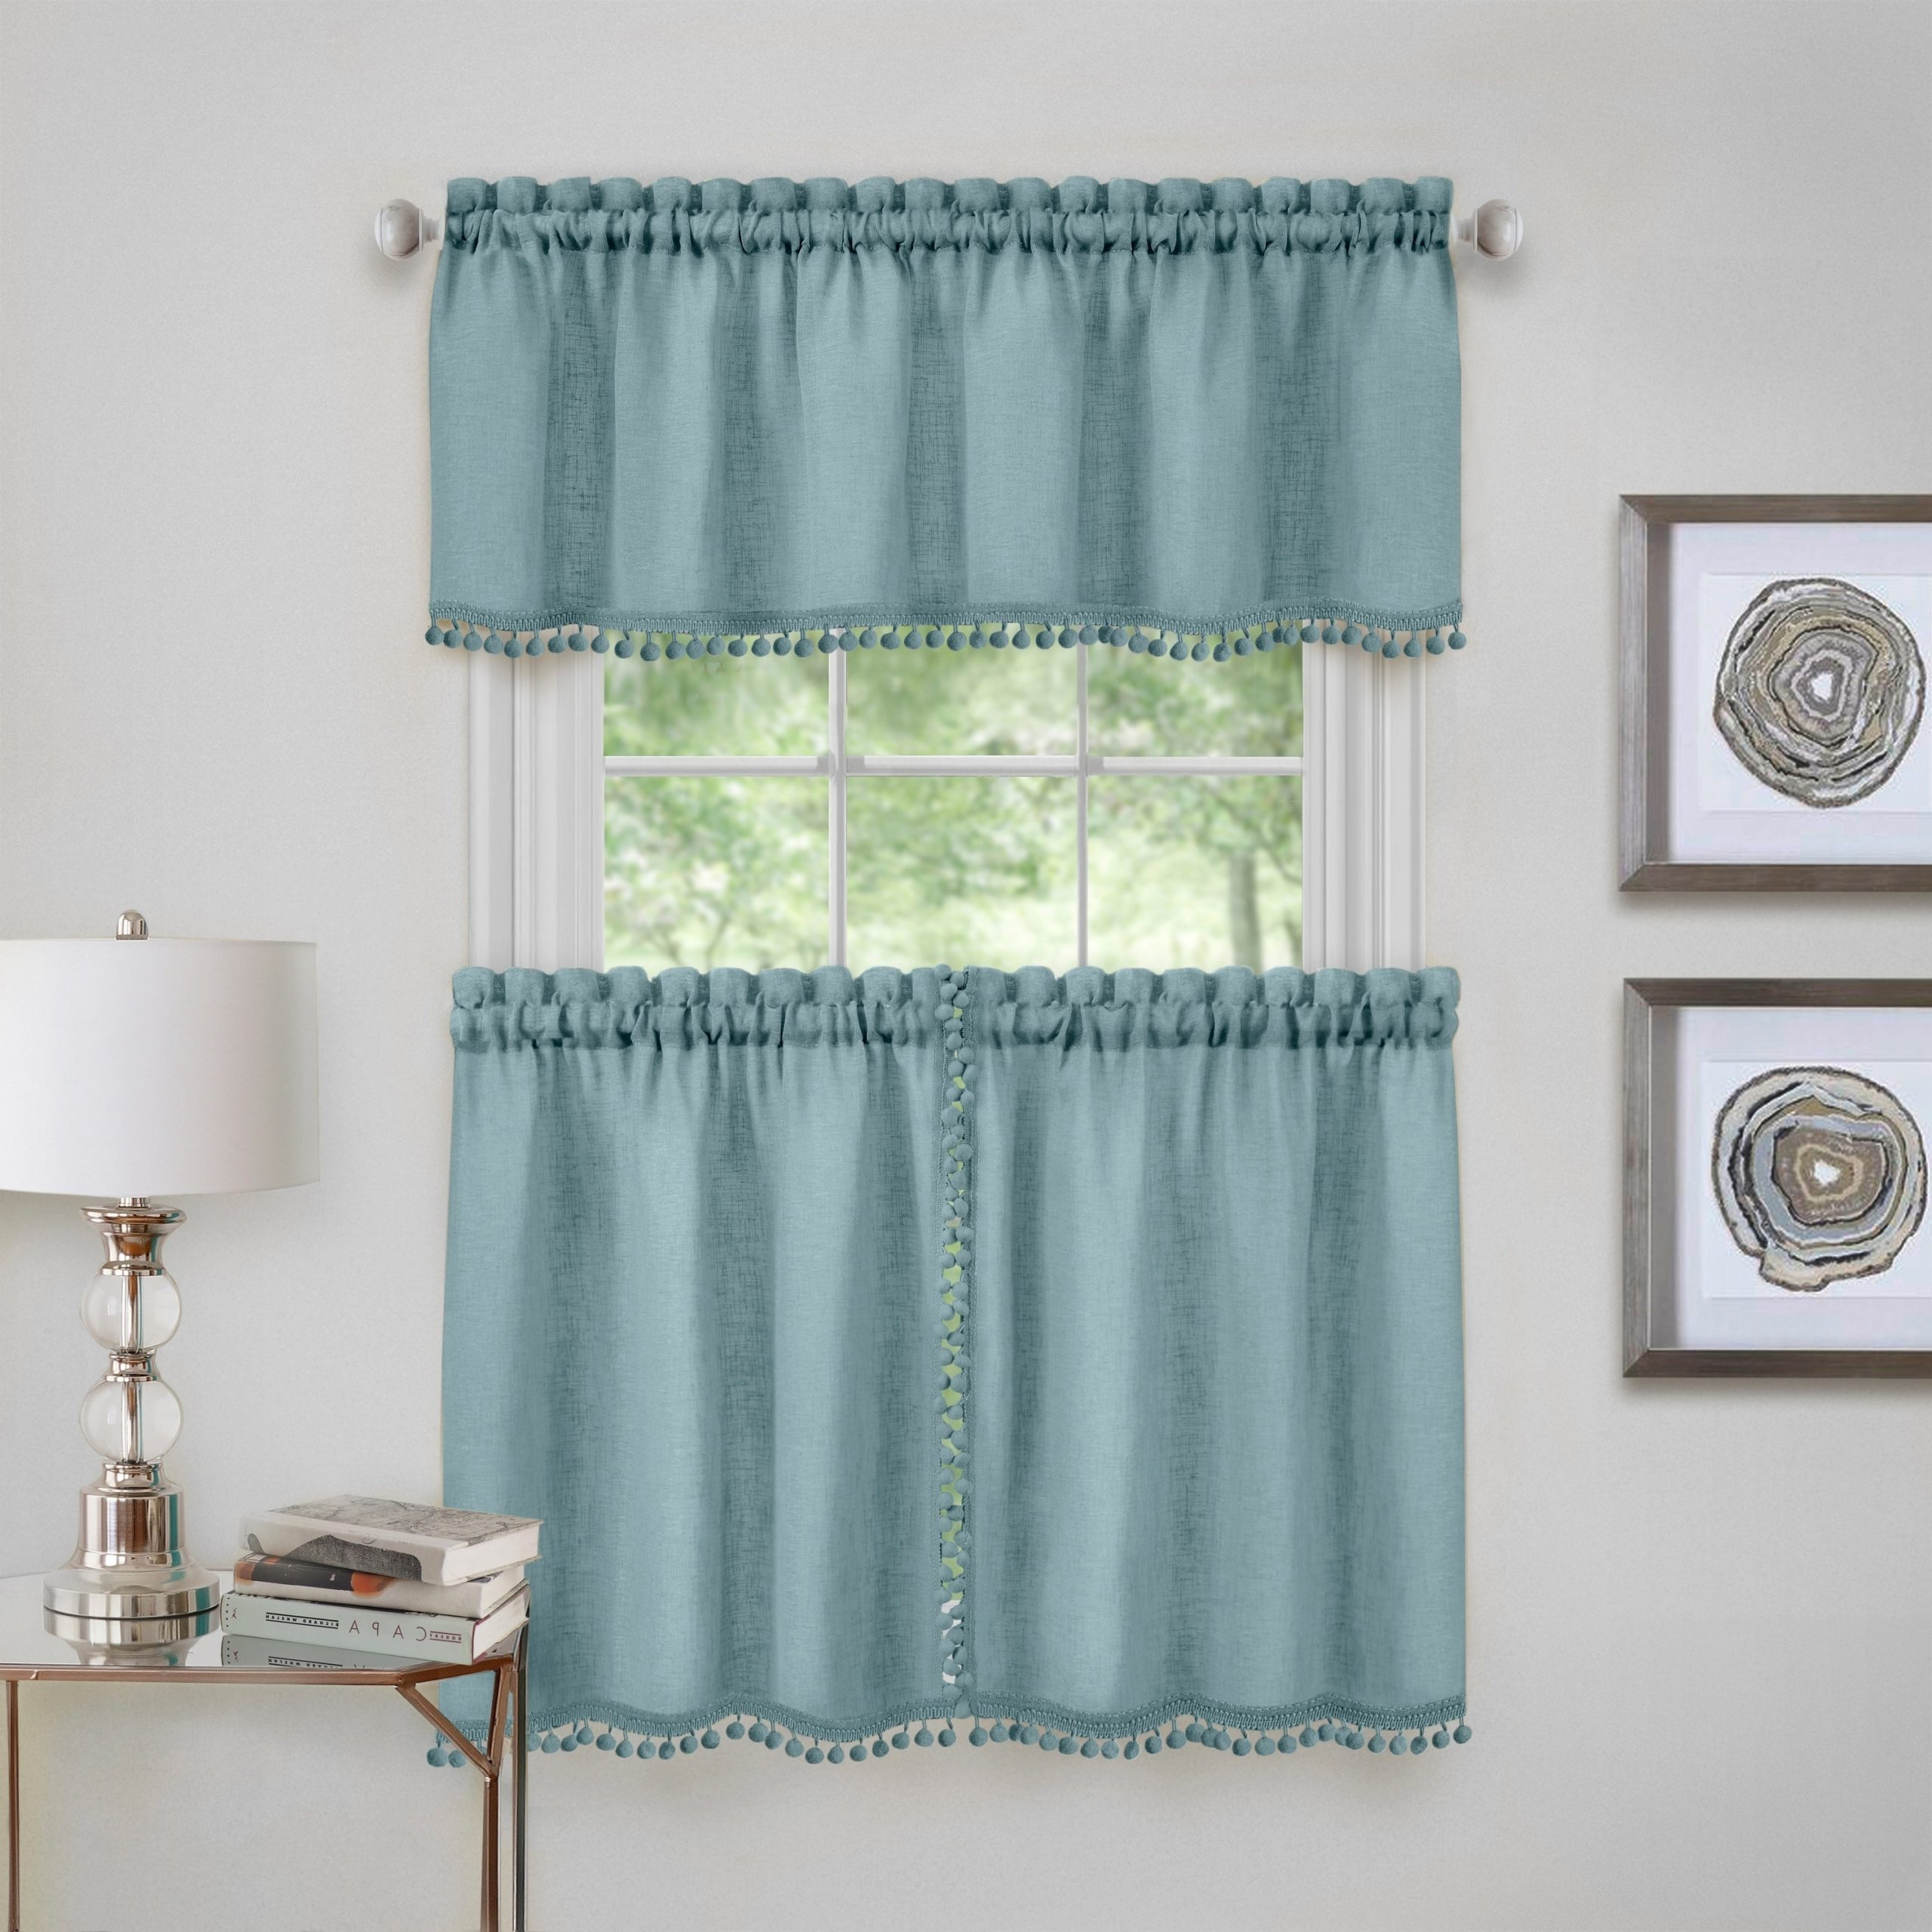 Wallace Window Kitchen Curtain Tier Pair And Valance Set Regarding 2021 Twill 3 Piece Kitchen Curtain Tier Sets (View 13 of 20)